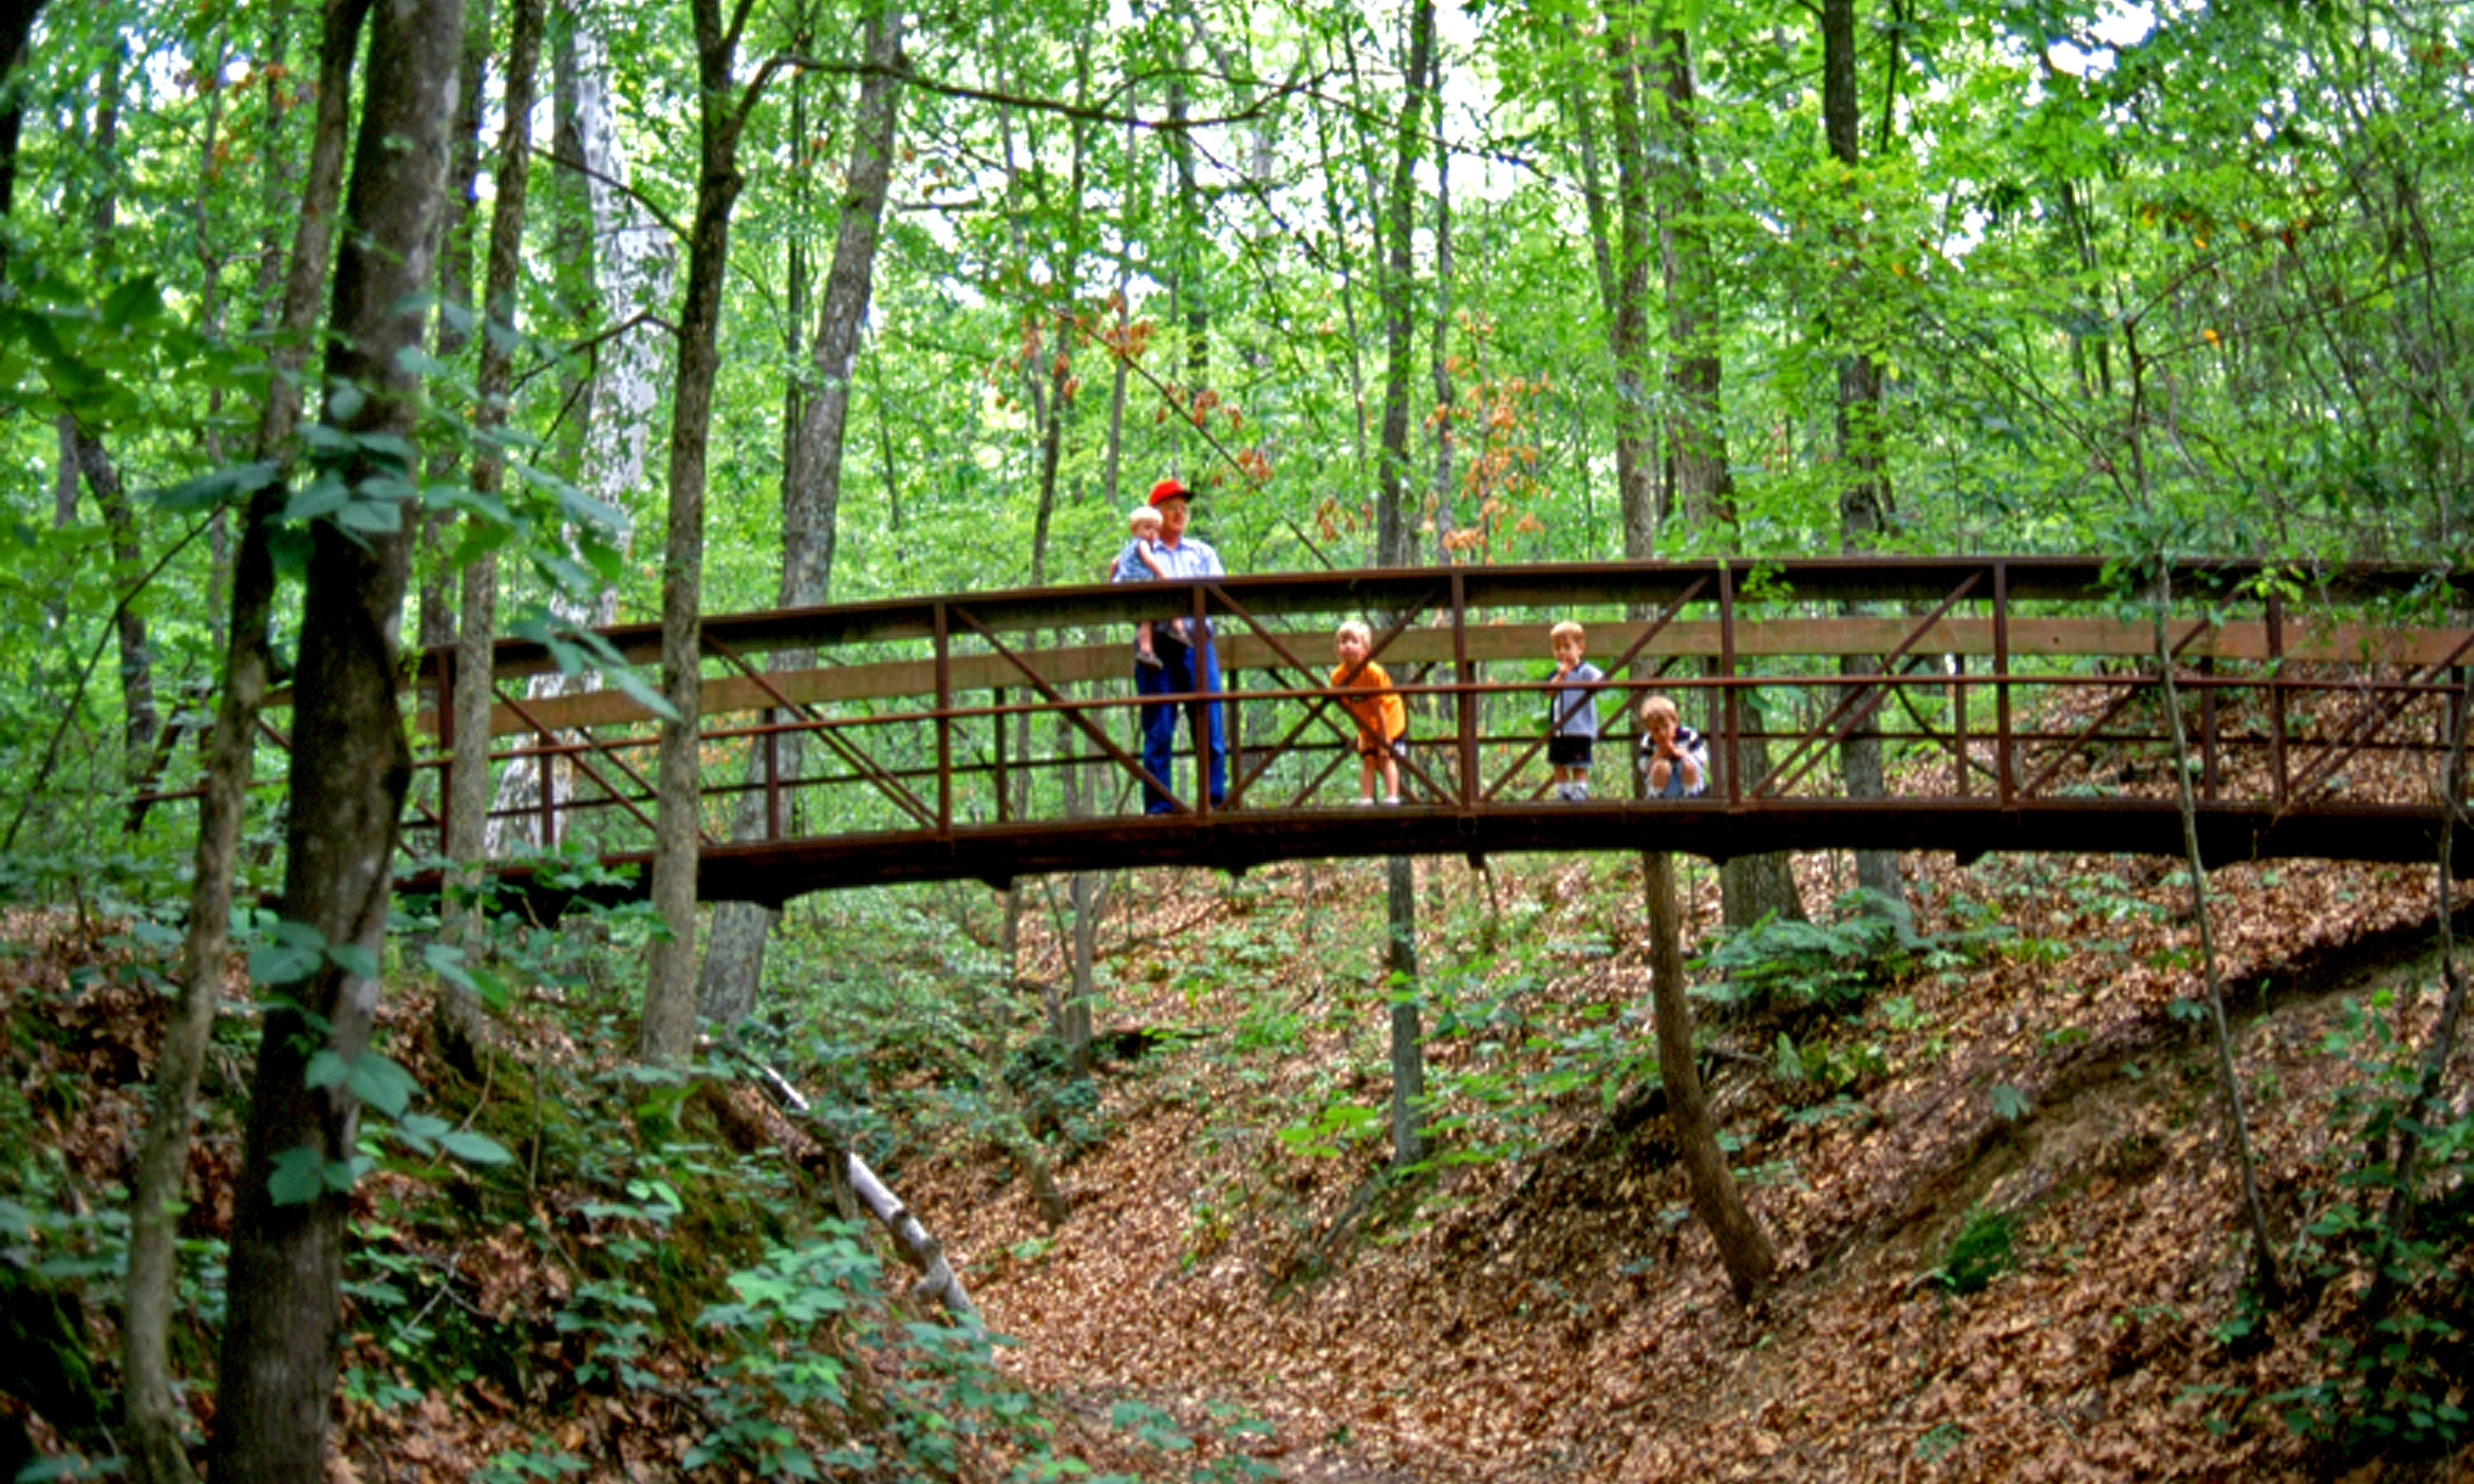 Even young hikers can enjoy Village Creek State Park.